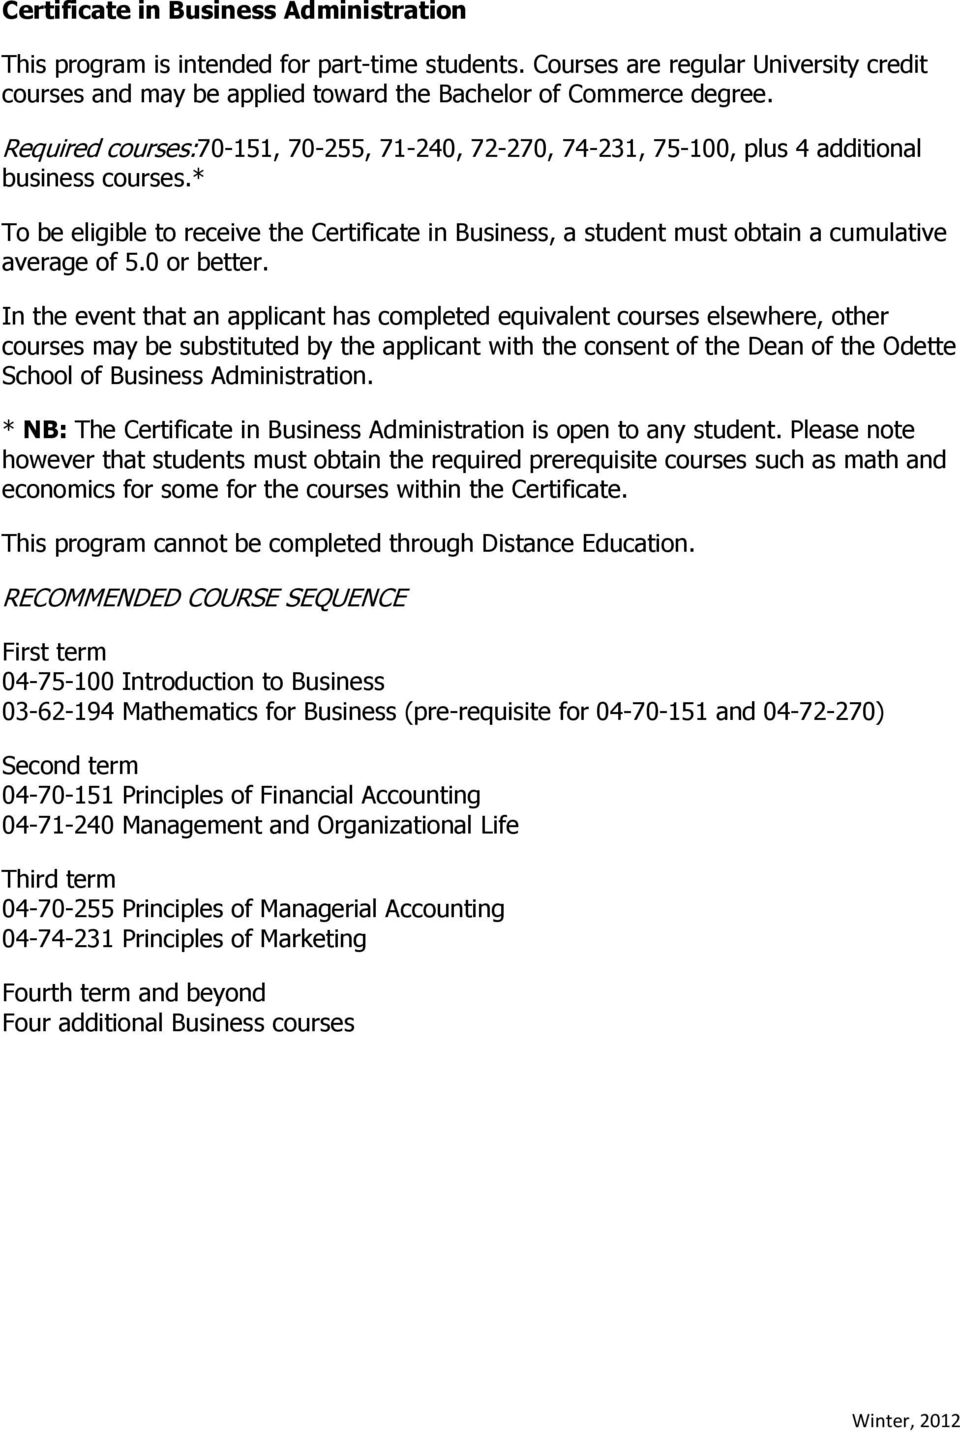 * To be eligible to receive the Certificate in Business, a student must obtain a cumulative average of 5.0 or better.